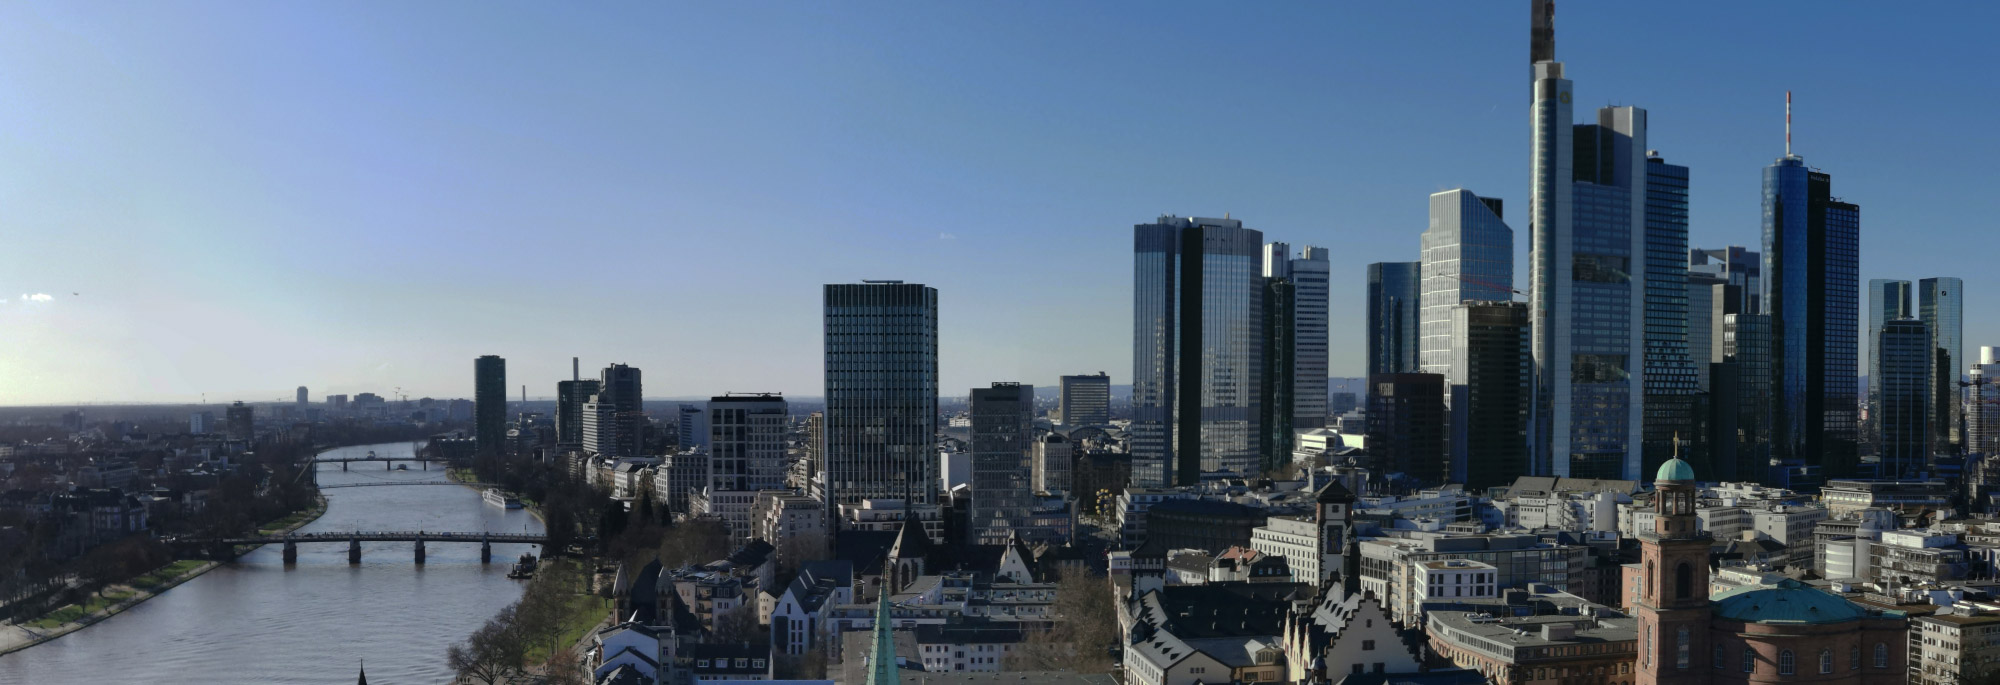 Why are there high-rise buildings in Frankfurt?